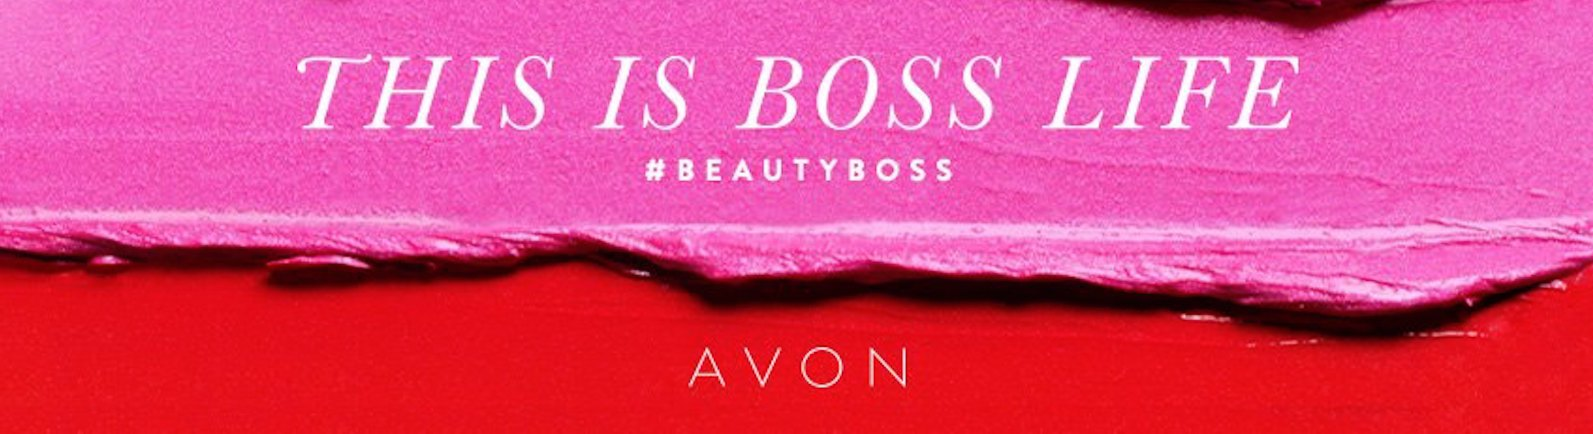 Avon calling: With a brand makeover, the beauty company targets millennials